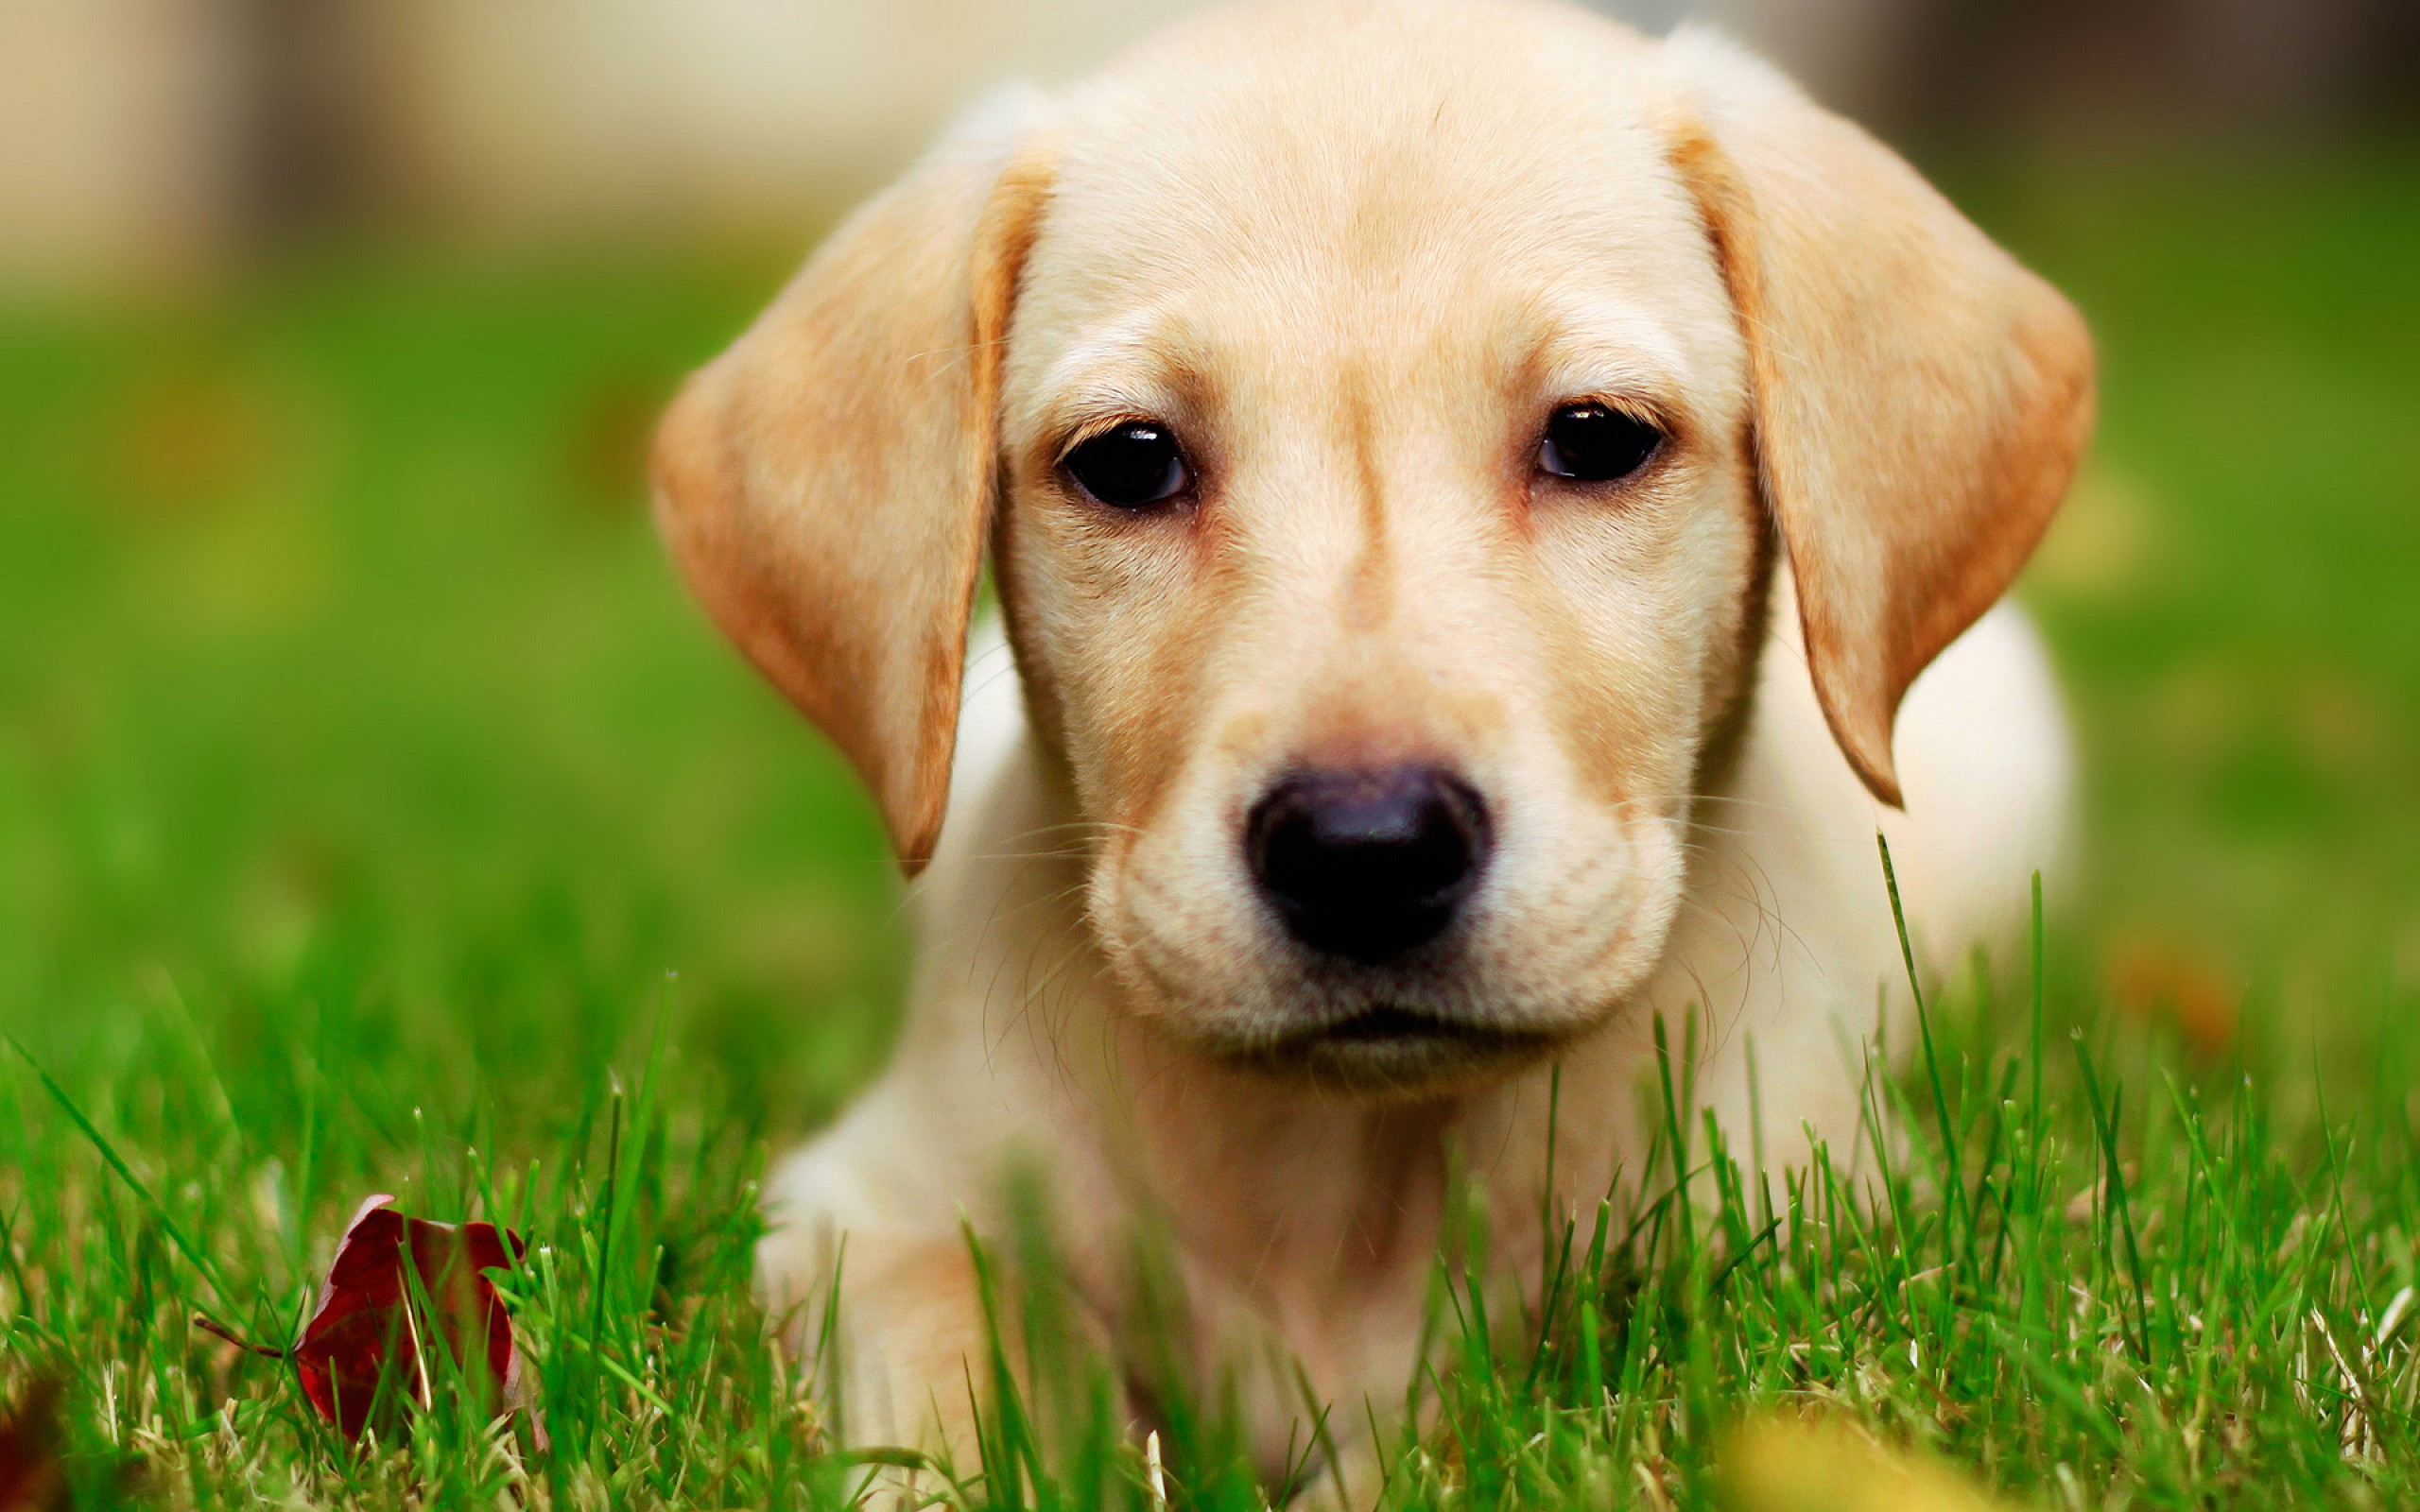 cute puppy pictures A2